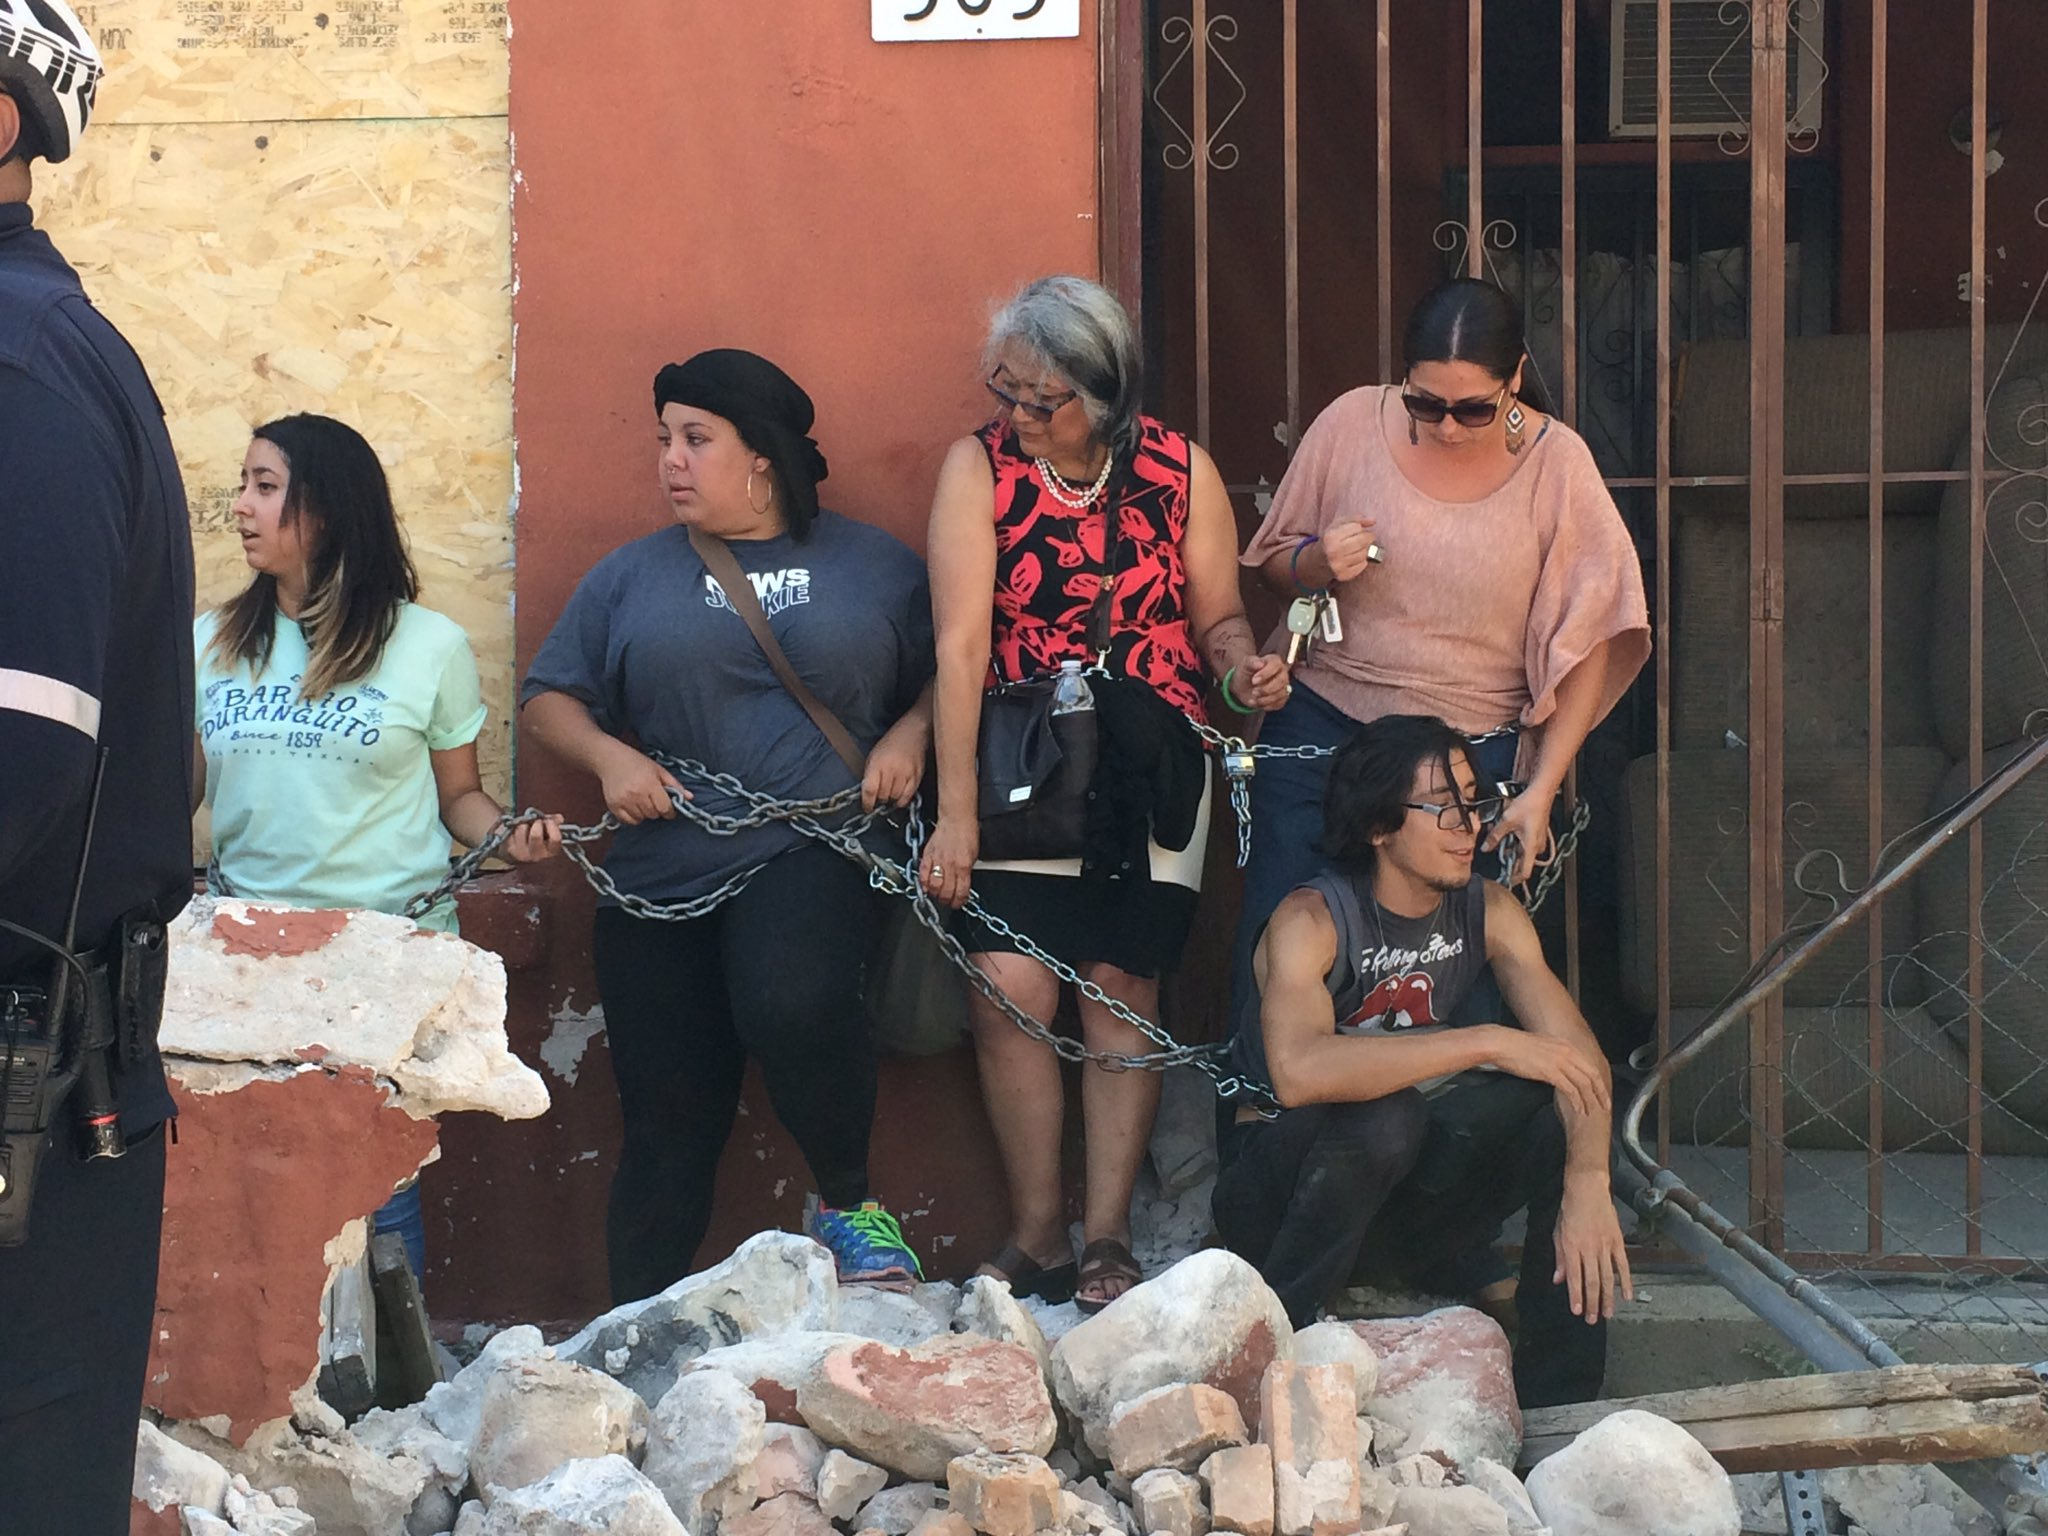 Protesters chain themselves to a building in the Duranguito neighborhood. Photo: KFOX14 / CBS4